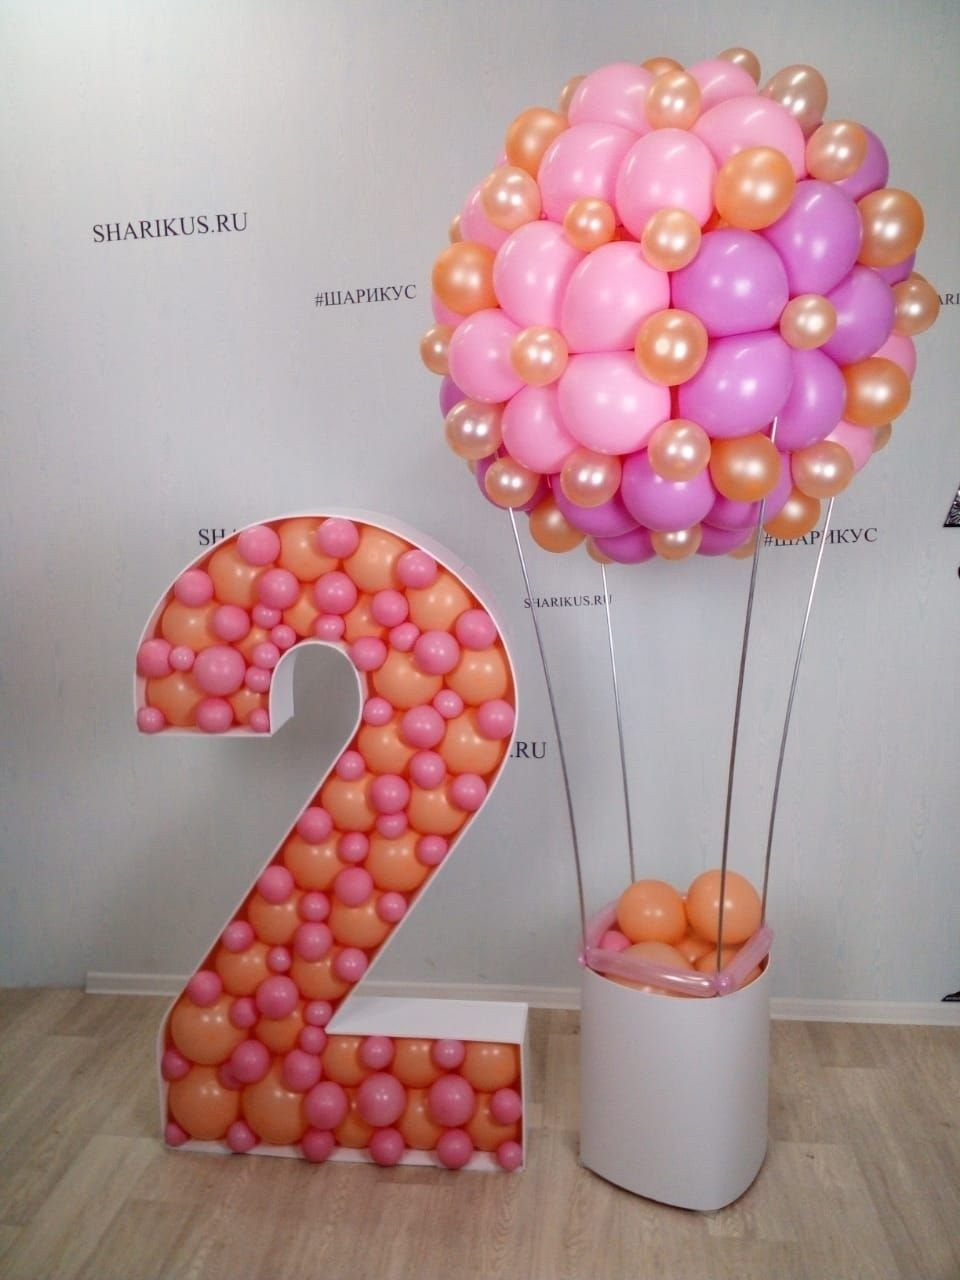 Lovely Ballon Decoration For Birthday Party Ideas Balloon Decorations Party Ballon Decorations Birthday Party Balloon